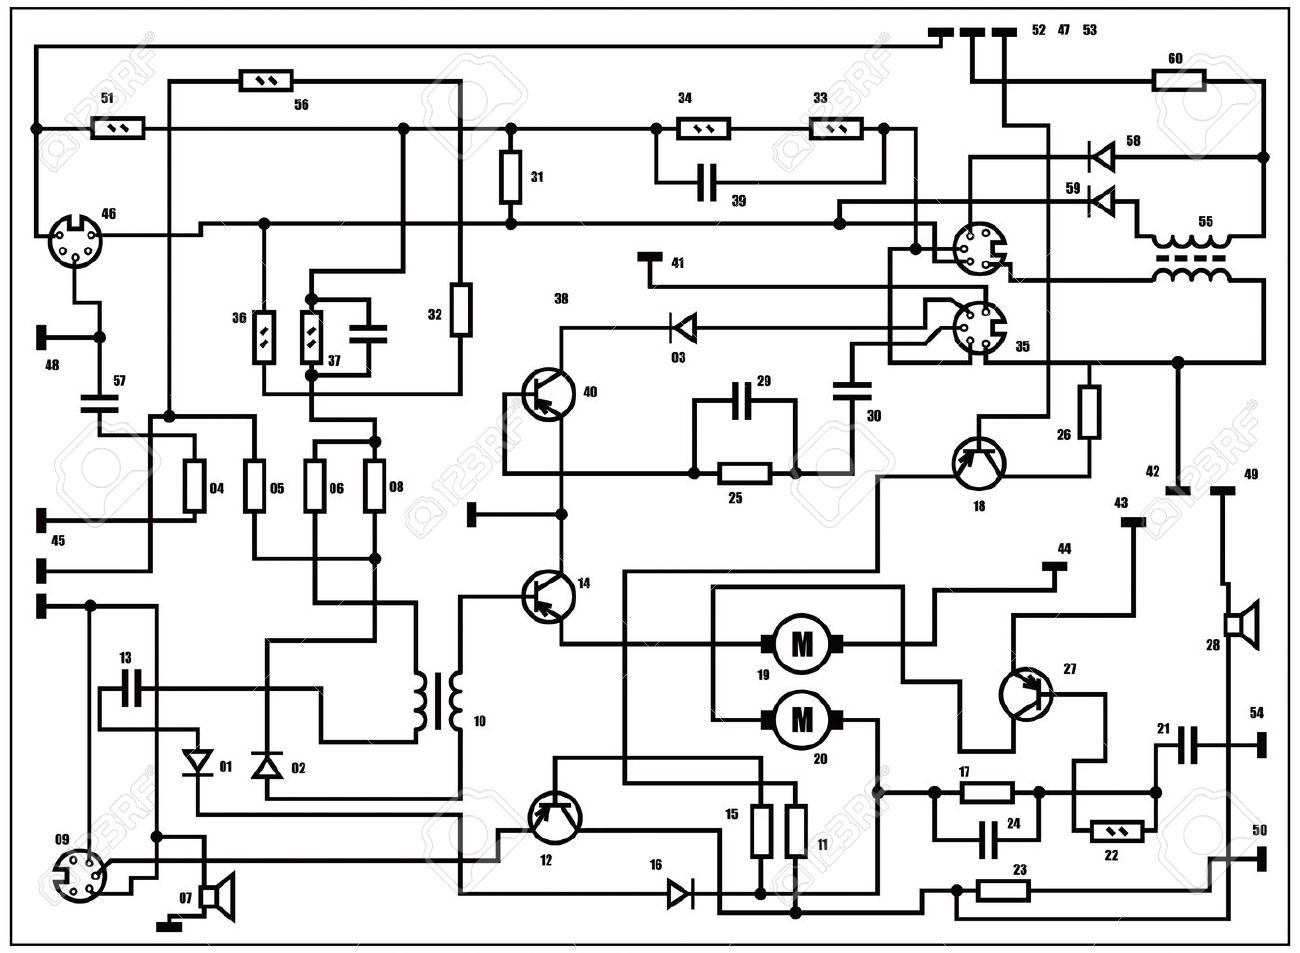 Kubota L295 Wiring Diagram Detailed Schematic Diagrams B26 Tractor L2350 27 Images